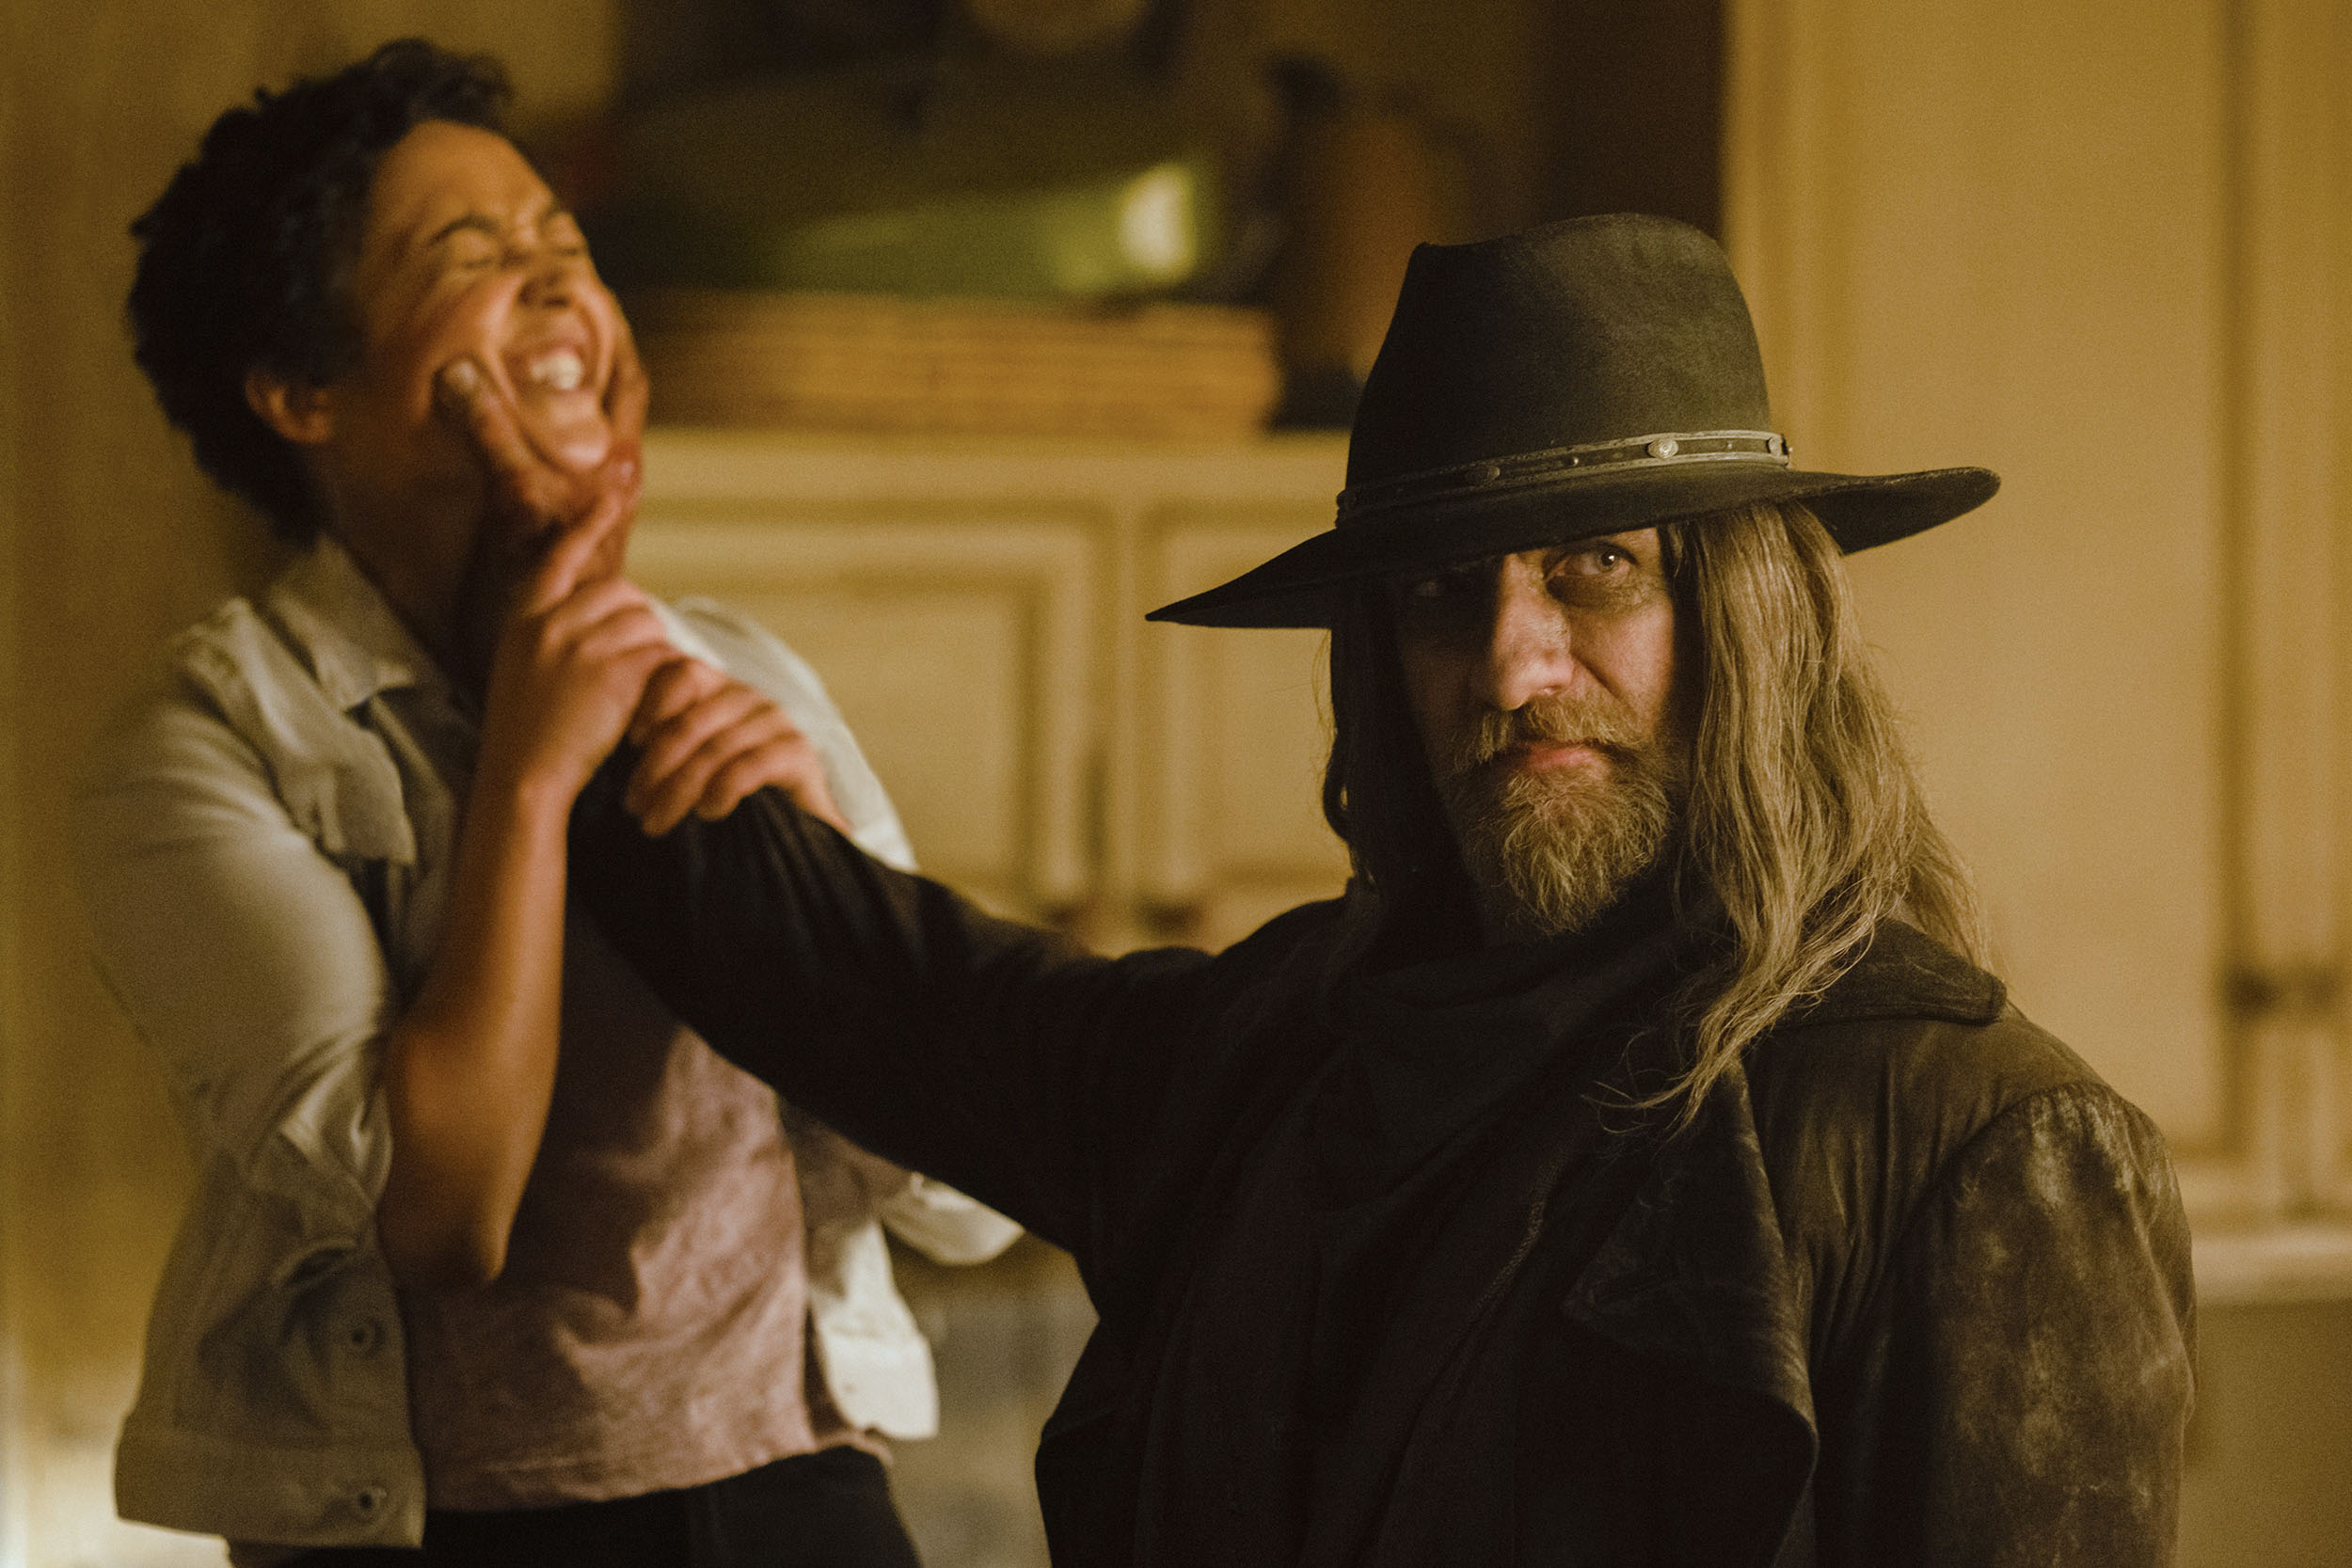 Graham McTavish as The Saint of Killers